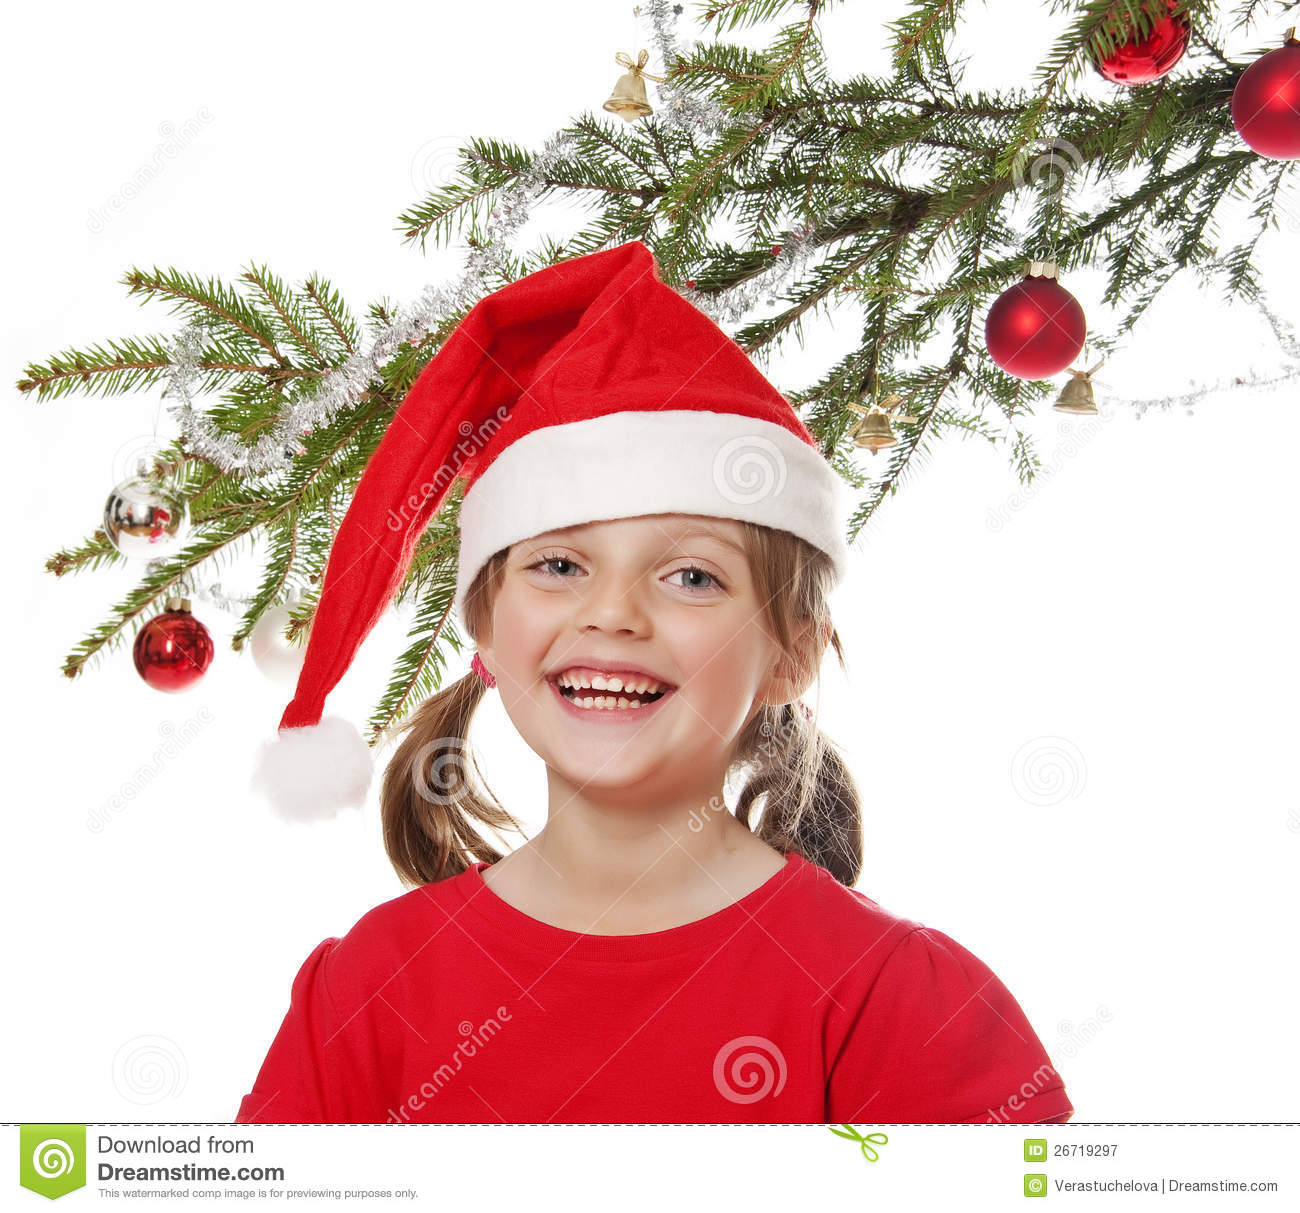 Little Girl Christmas Tree: Little Girl With Santa Cap And Christmas Tree Stock Image